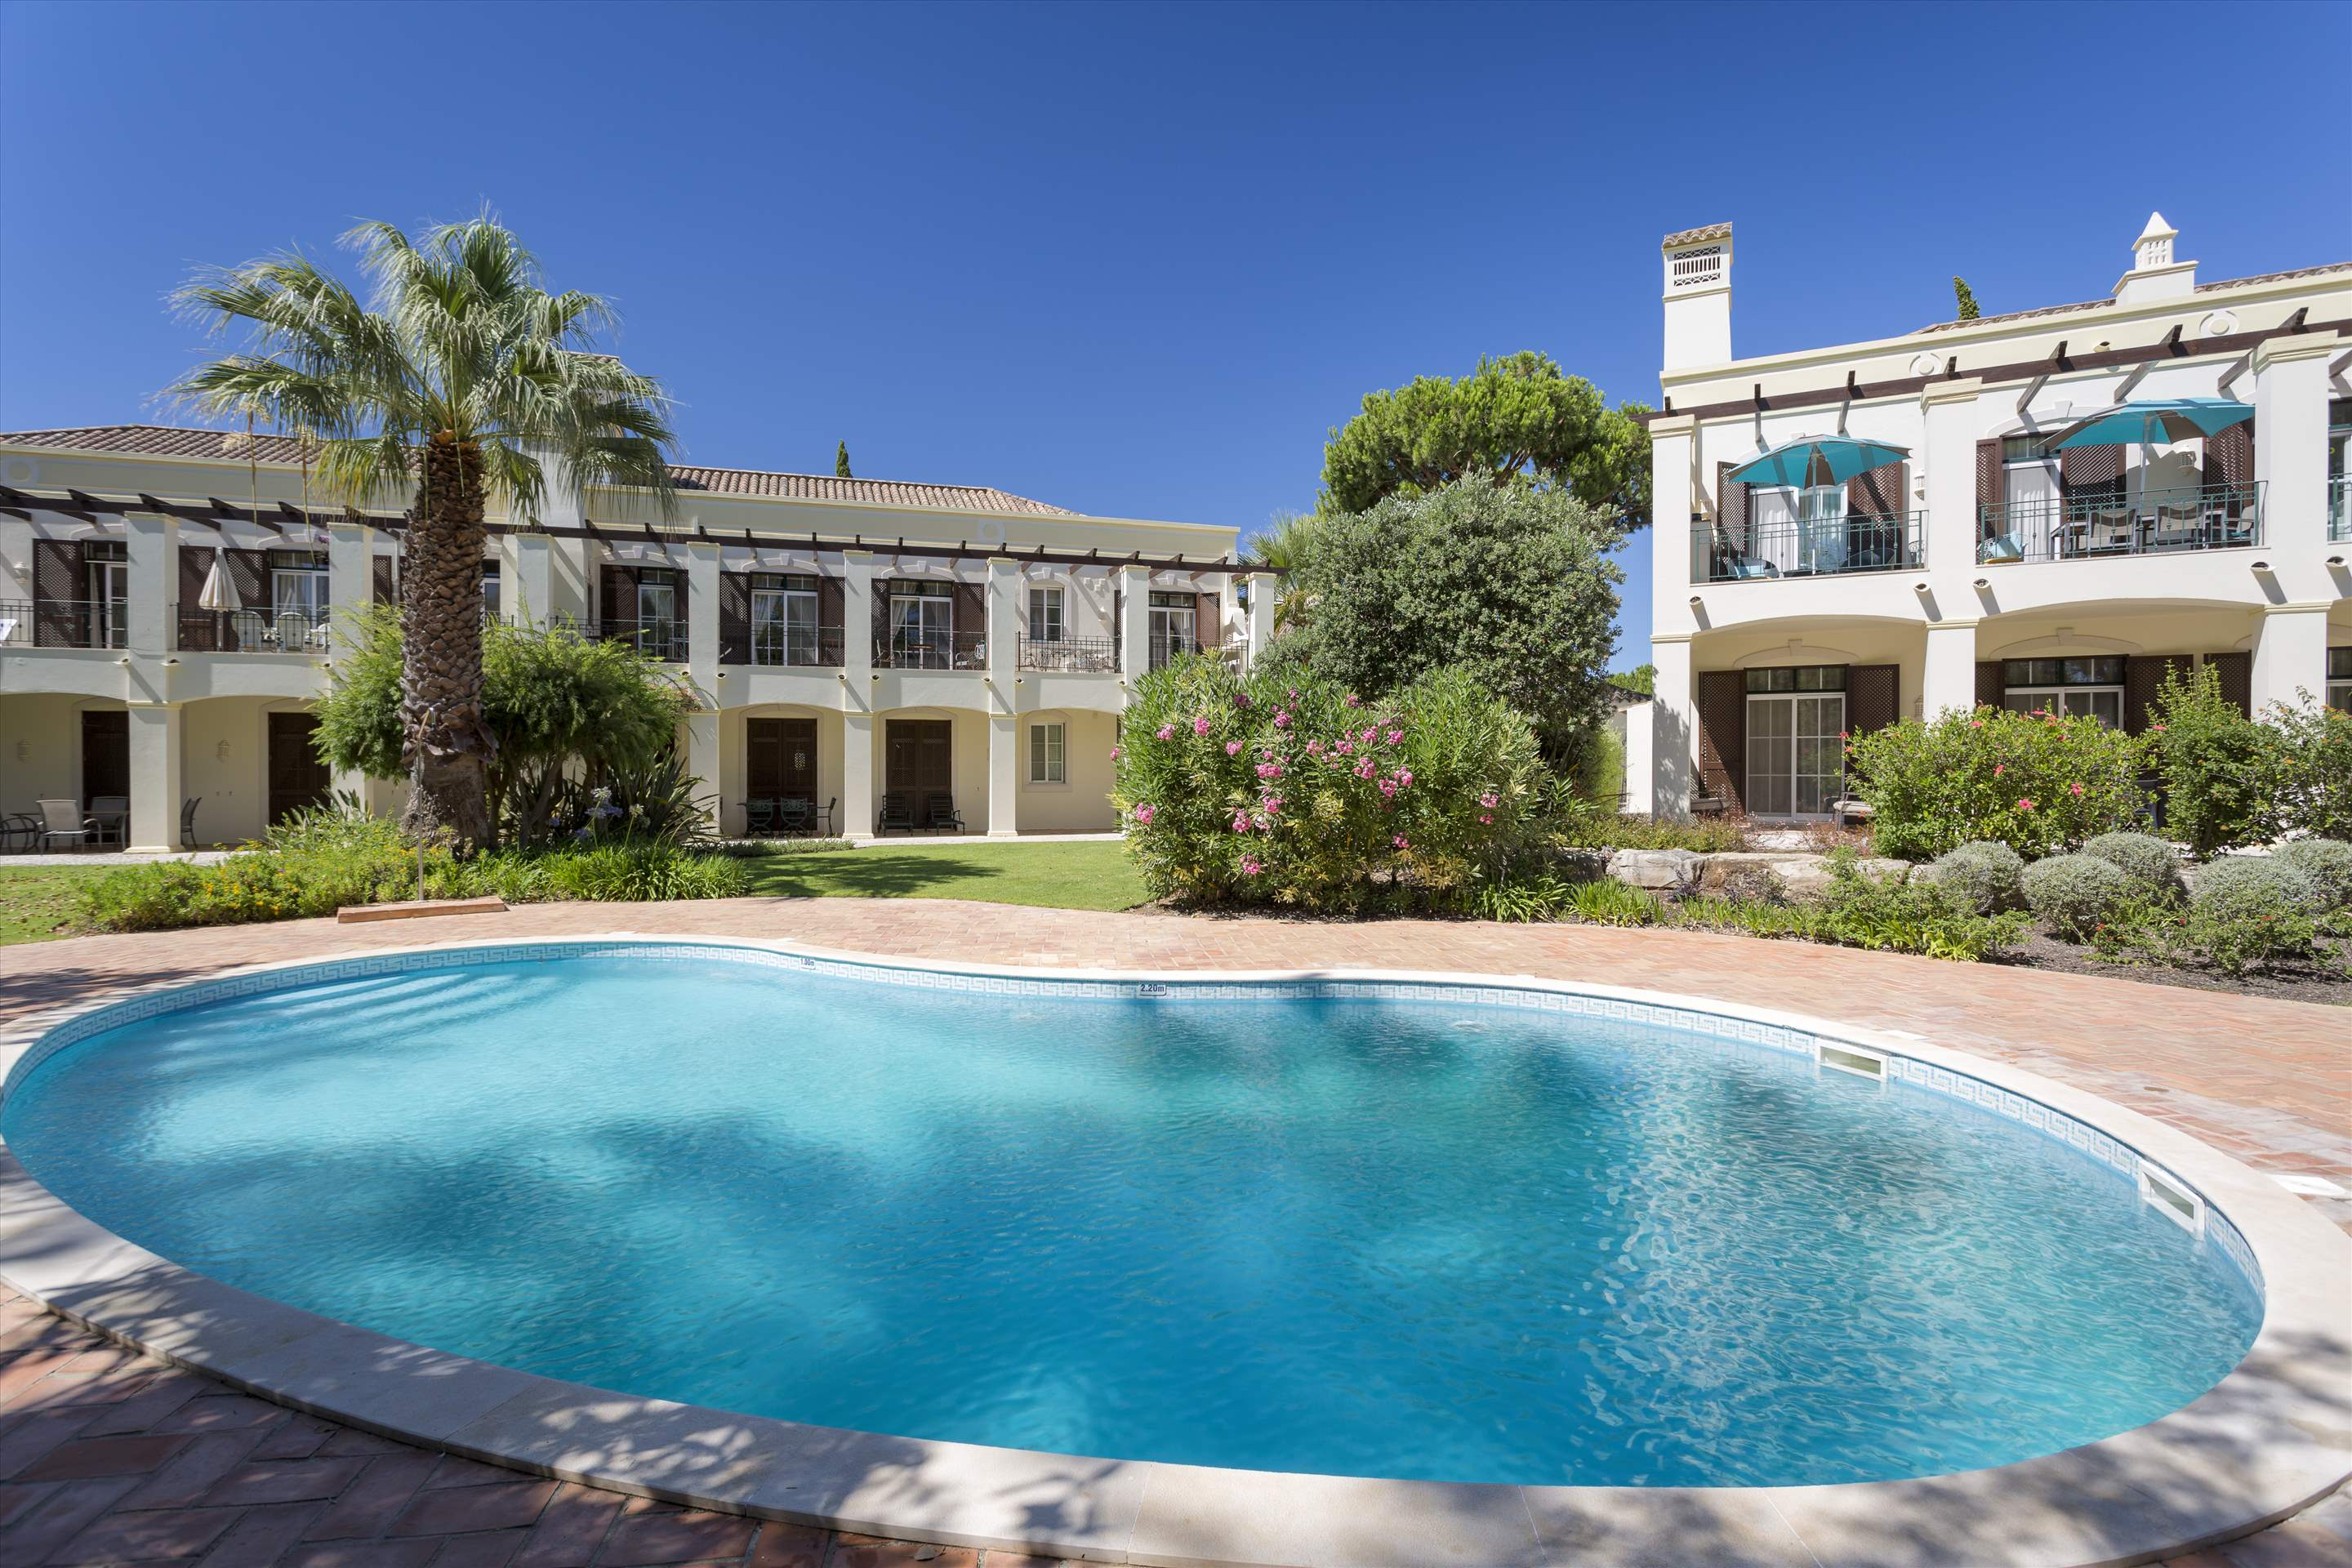 Townhouse Jessica, 3 bedroom villa in Quinta do Lago, Algarve Photo #17